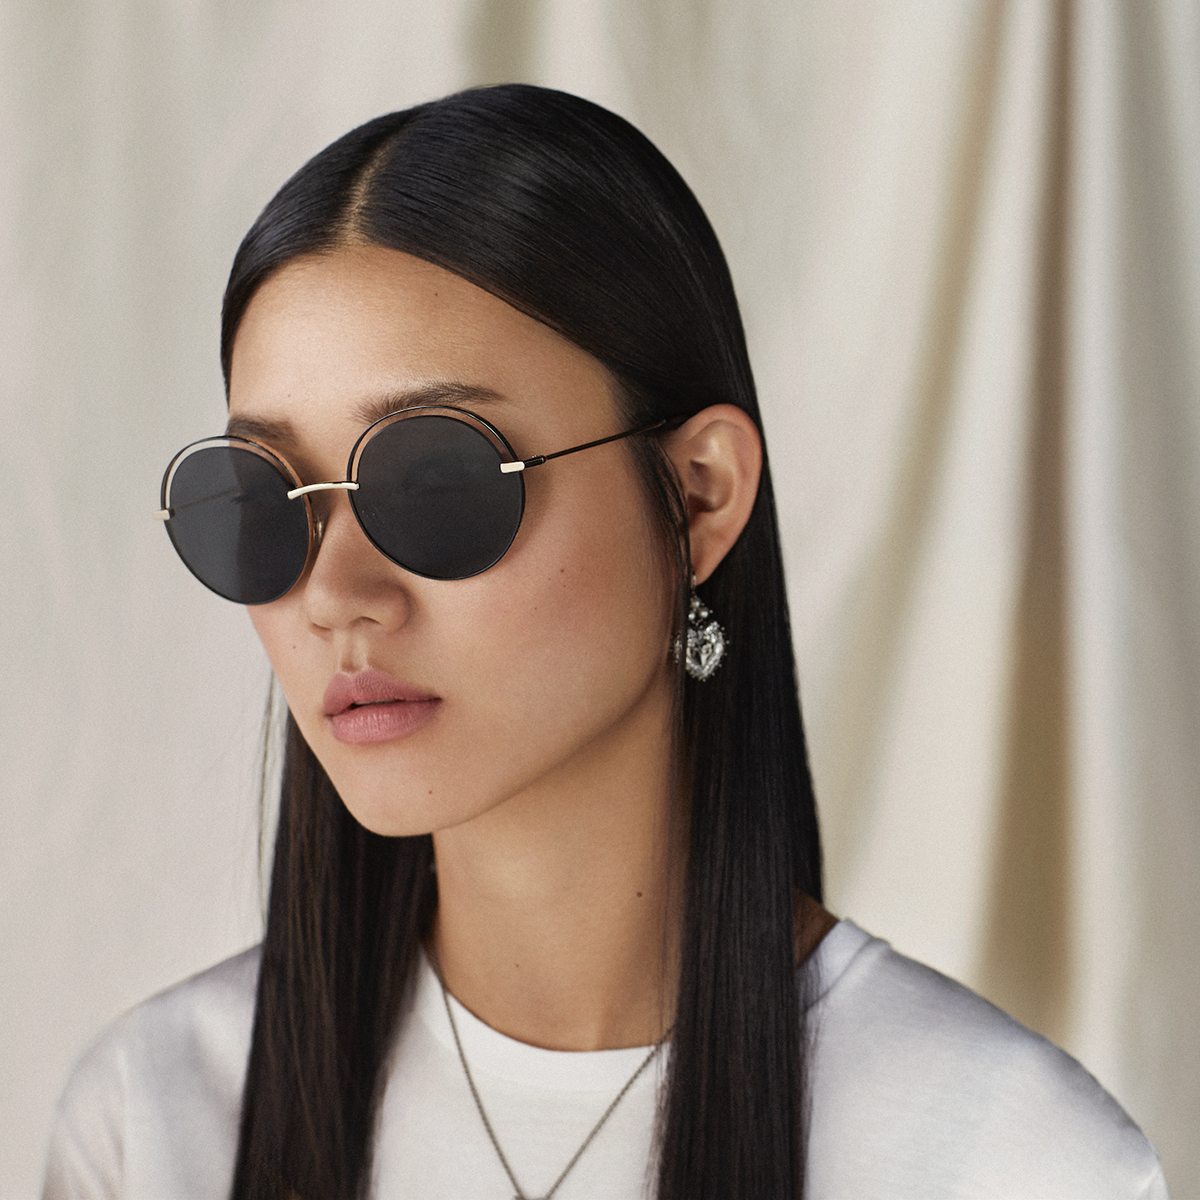 The #DolceGabbana sunglasses include round lenses and thin, gold metal frames.  Discover the #DGEyewear at the link: